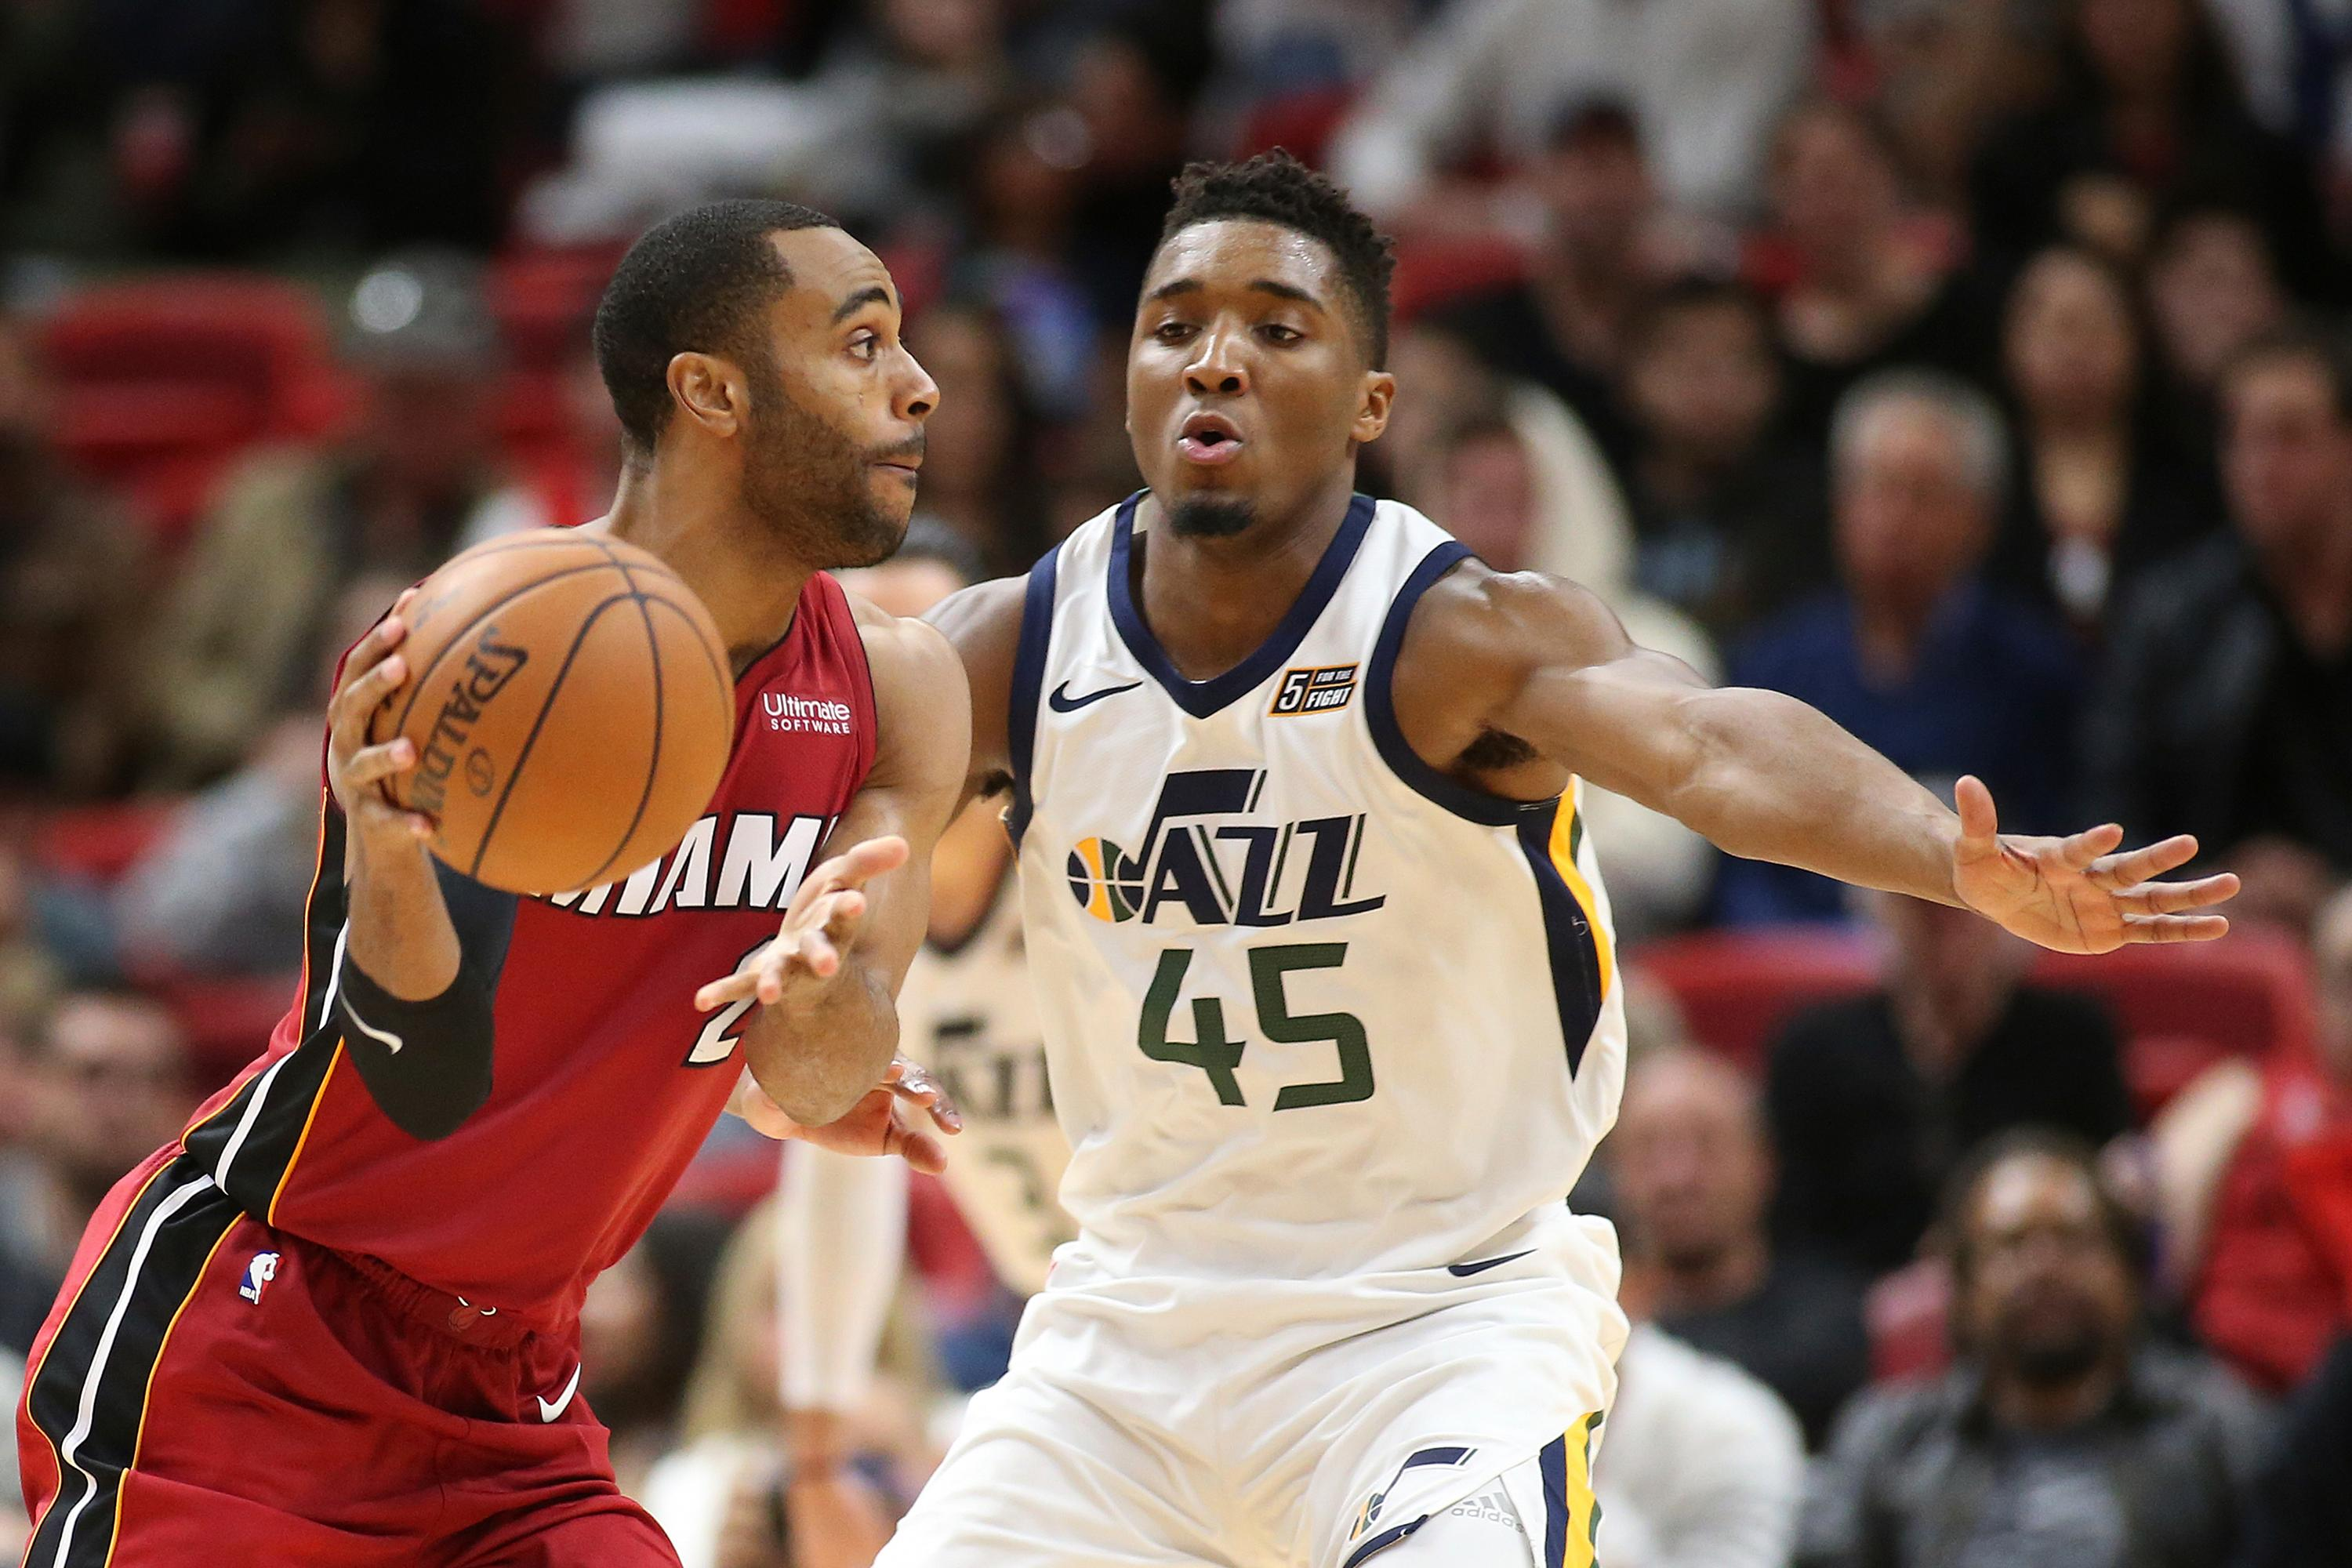 Utah Jazz guard Donovan Mitchell (45) defends against Miami Heat guard Wayne Ellington (2) during the second half of an NBA basketball game, Sunday, Jan. 7, 2018, in Miami. (AP Photo/Joel Auerbach)